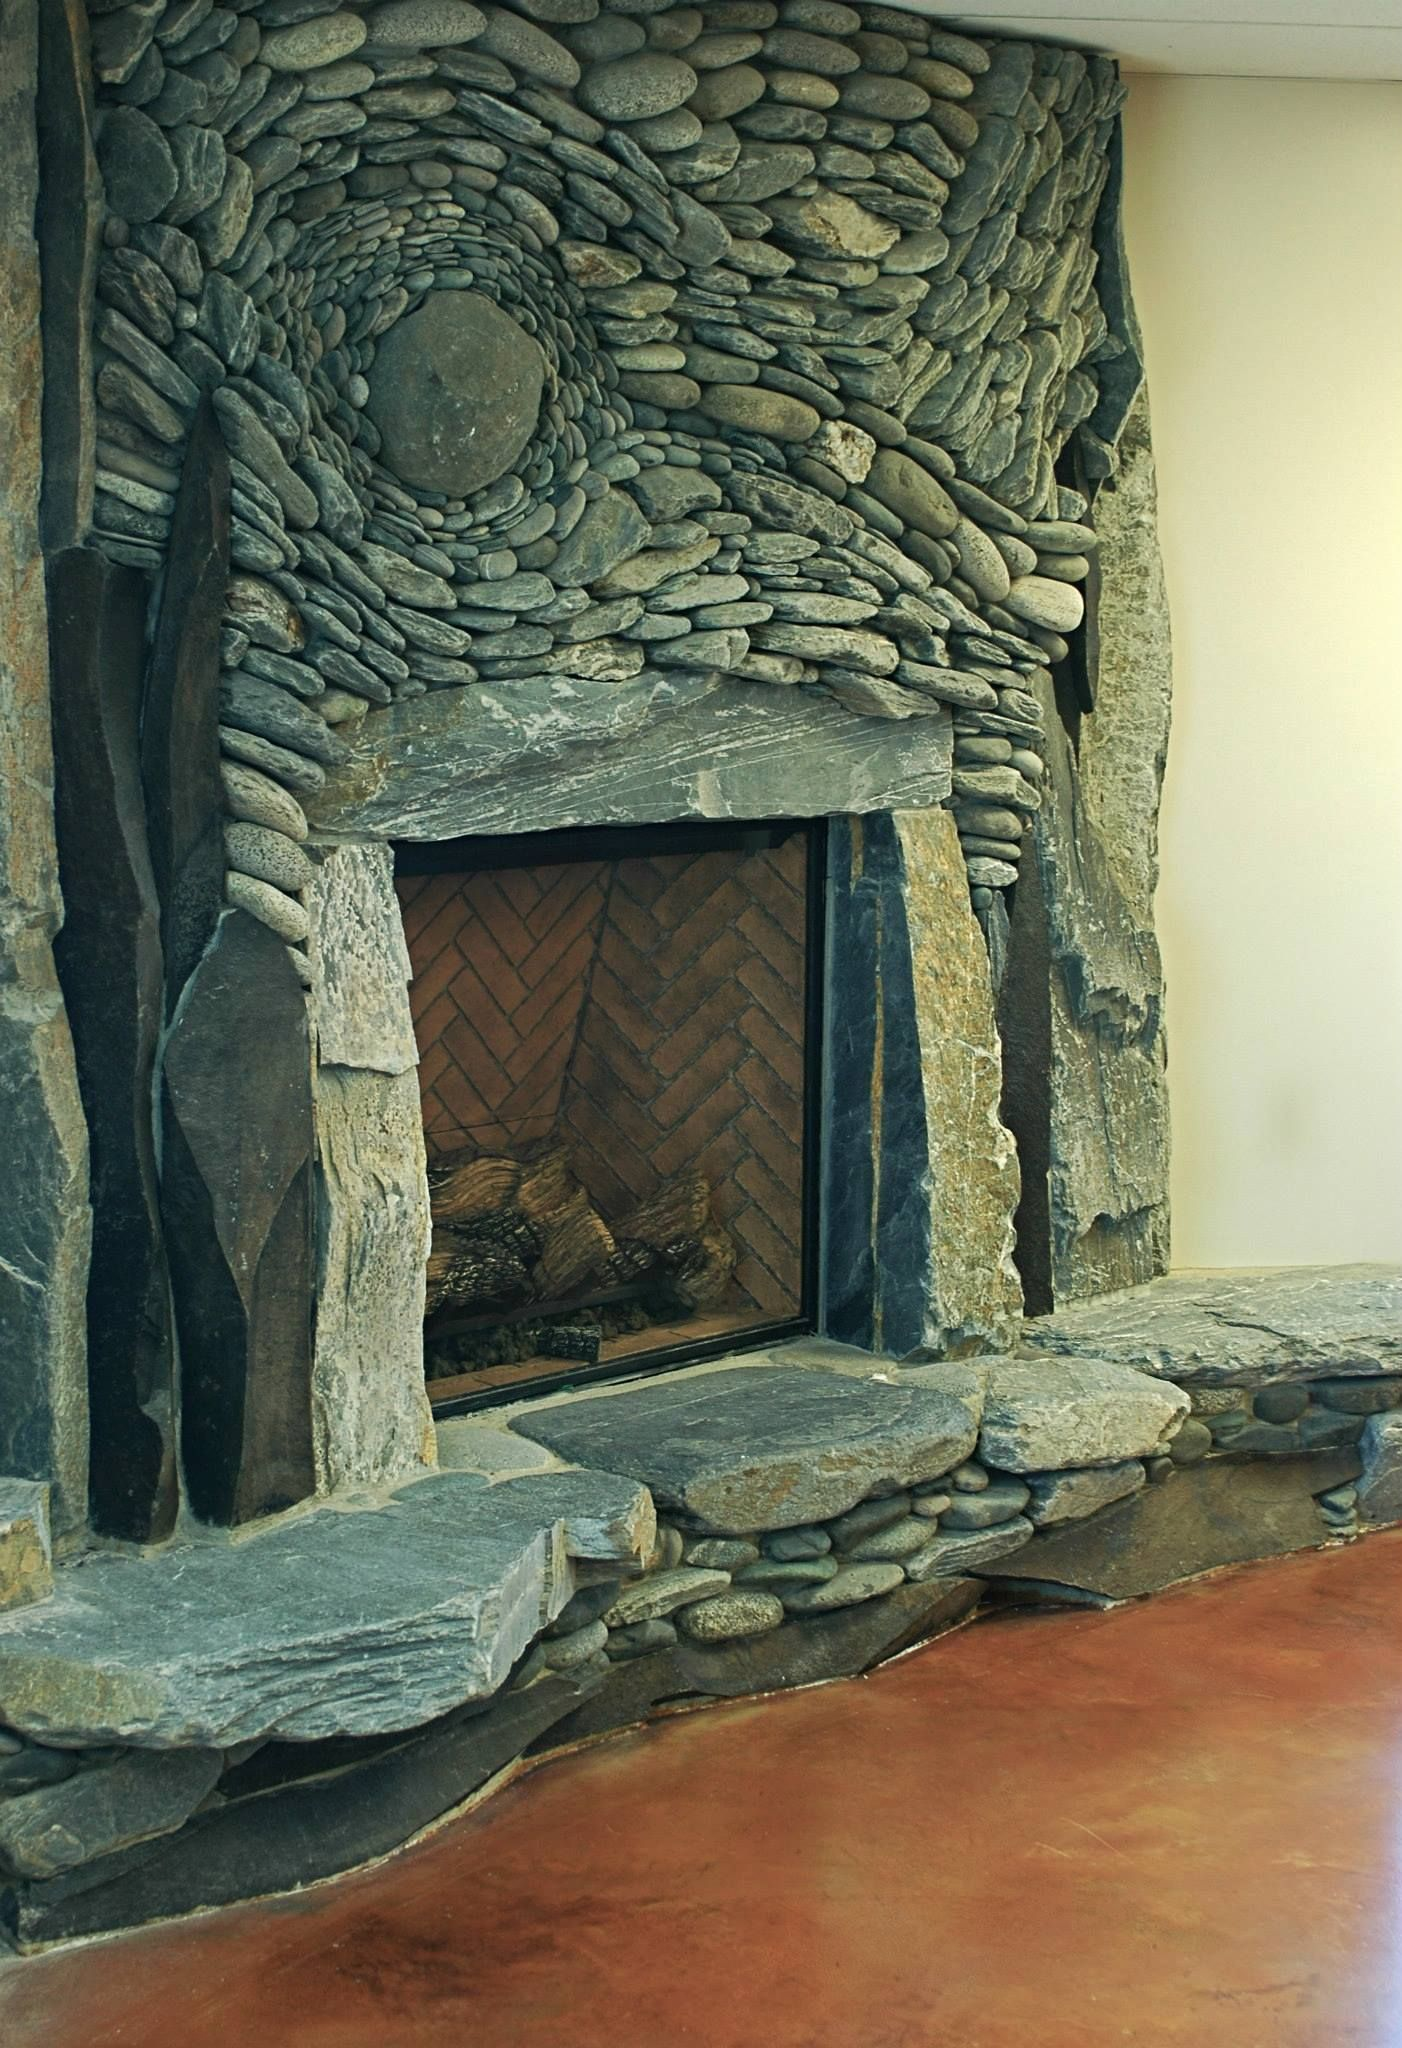 Vangogh S Starry Night Rendered In Stone Natural Stone Fireplace Quot Norma Rae Quot Www